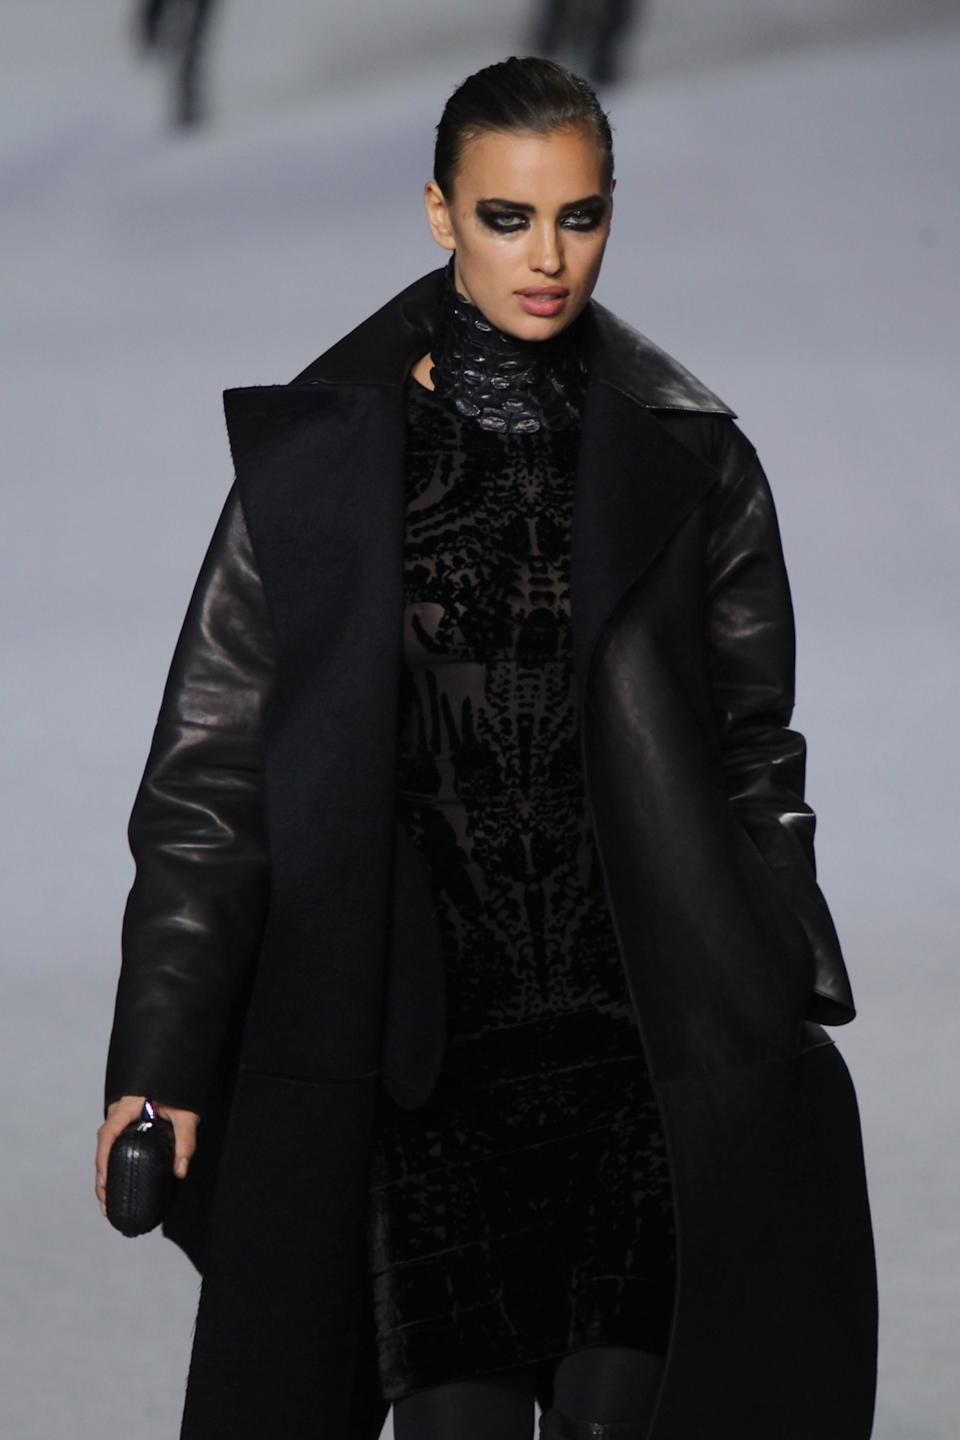 Irina Shayk walks the runway at the Kanye West  Ready-To-Wear Fall/Winter 2012 show as part of Paris Fashion Week at Halle Freyssinet on March 6, 2012 in Paris, France